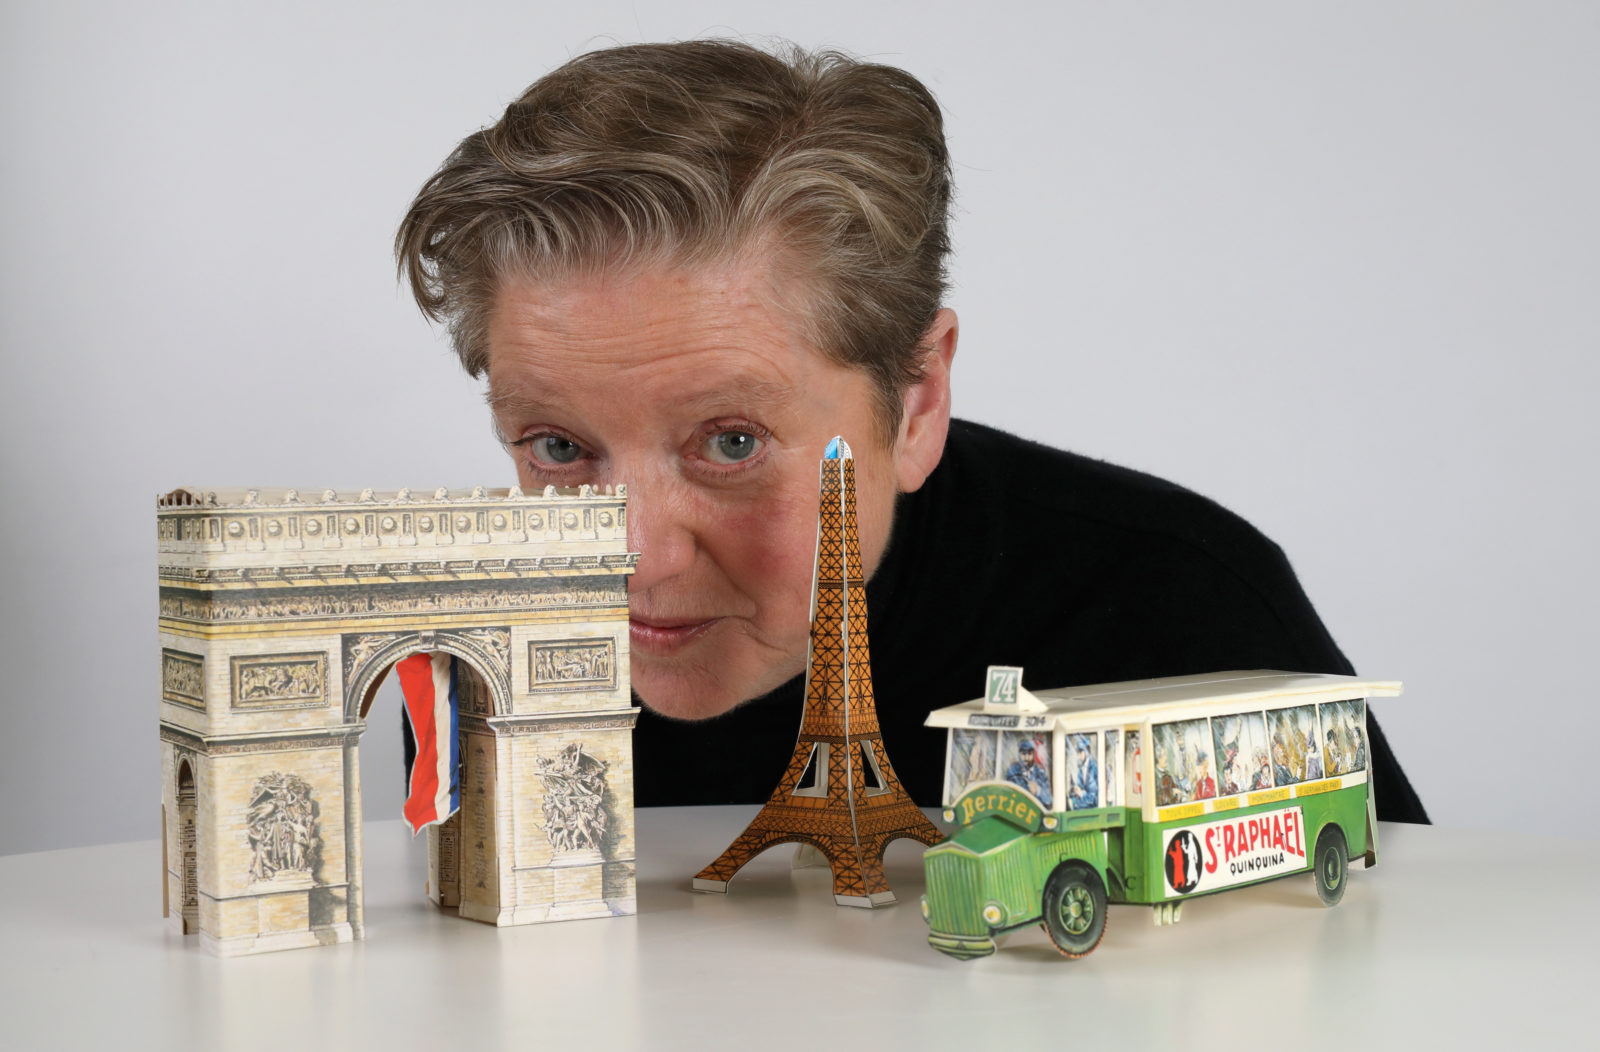 Image of Robyn Archer peering from behind three models of a bus, Eiffel Tower and Arc De Triomphe